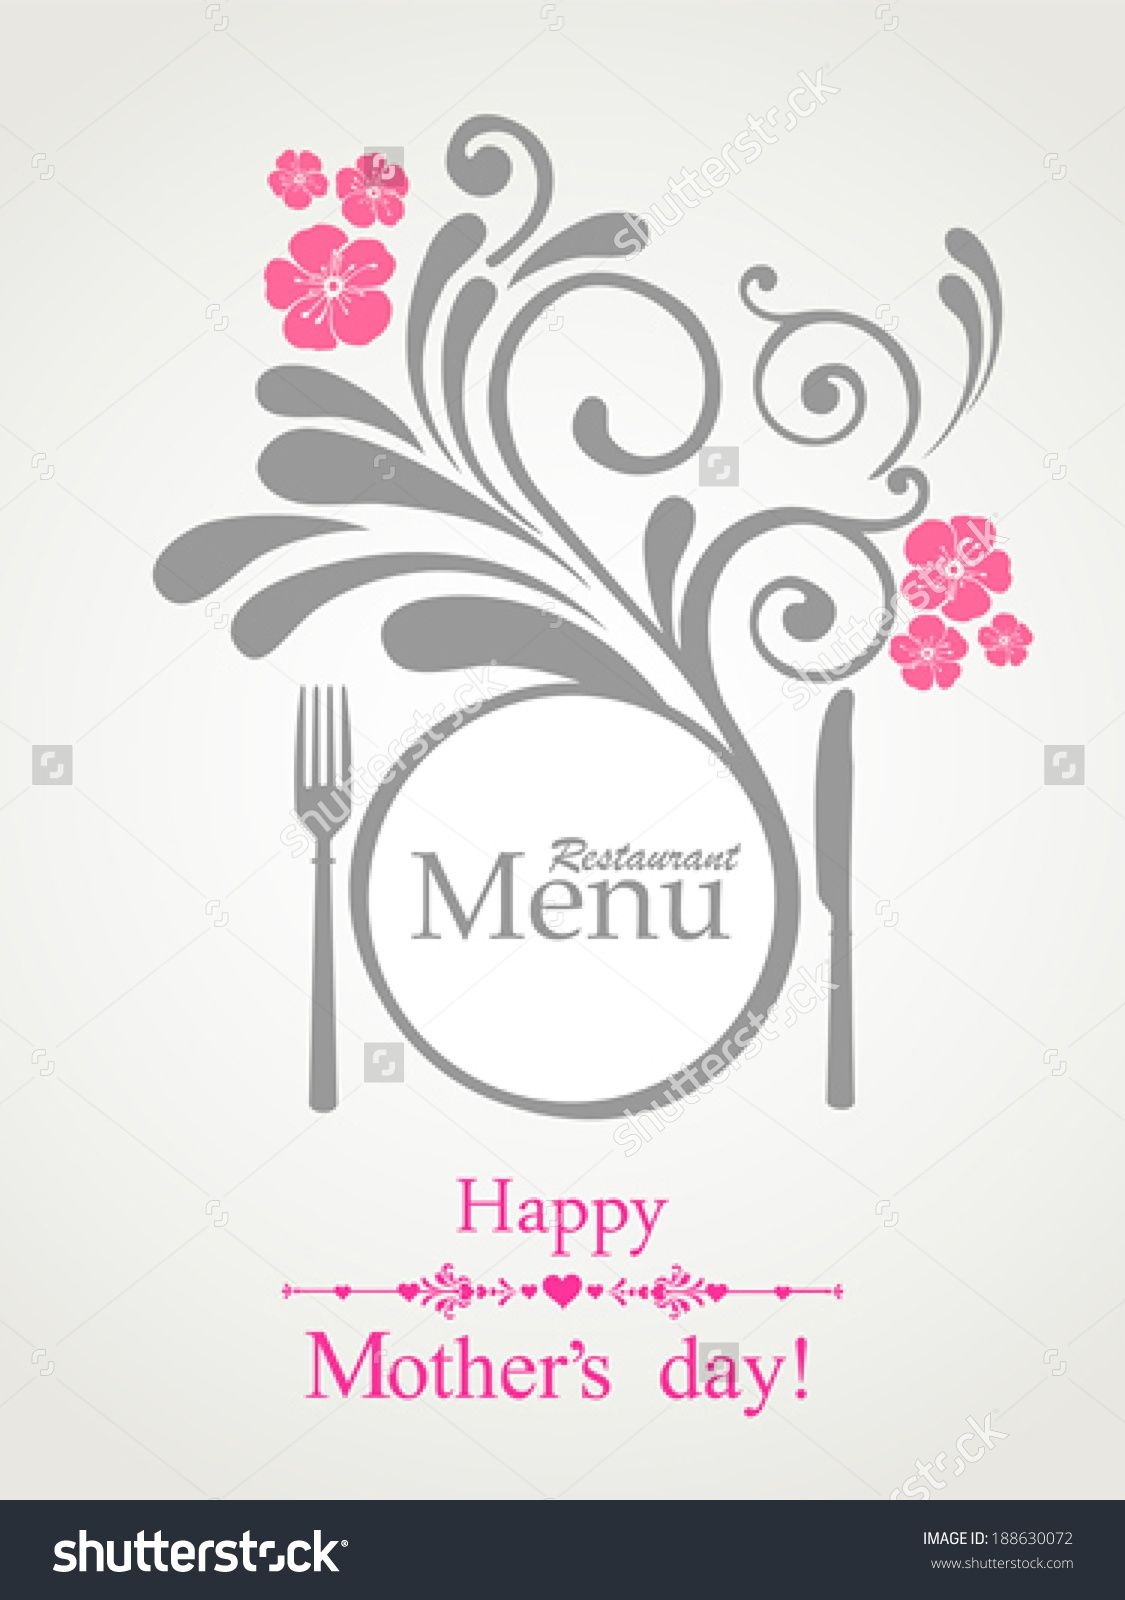 Happy MotherS Day Restaurant Menu Card Design Menu Template On